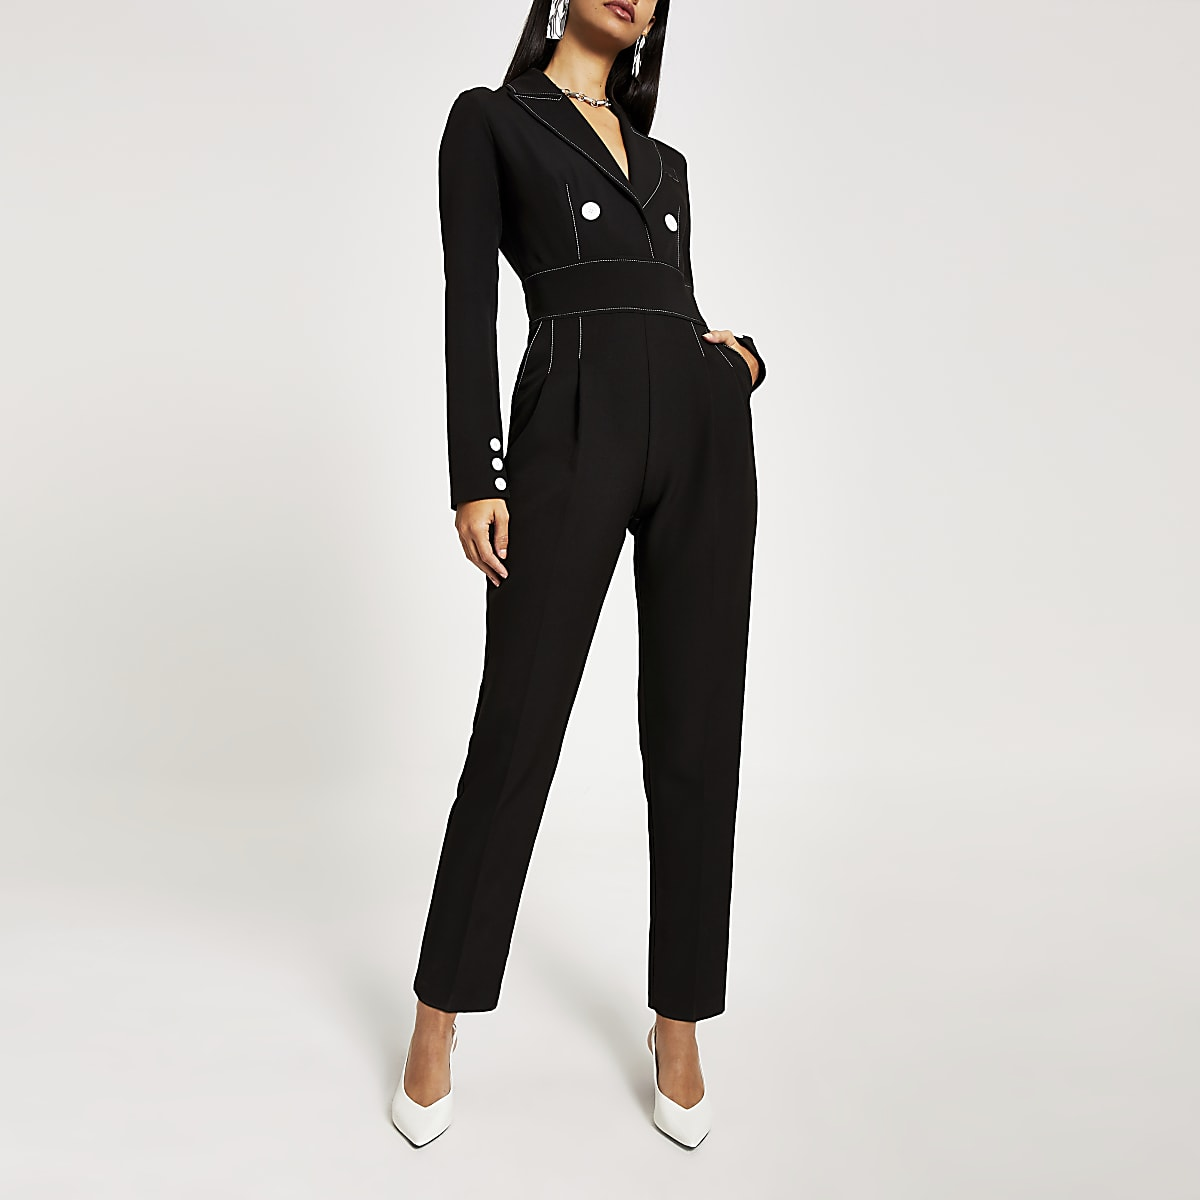 Black contrast stitch high waist jumpsuit